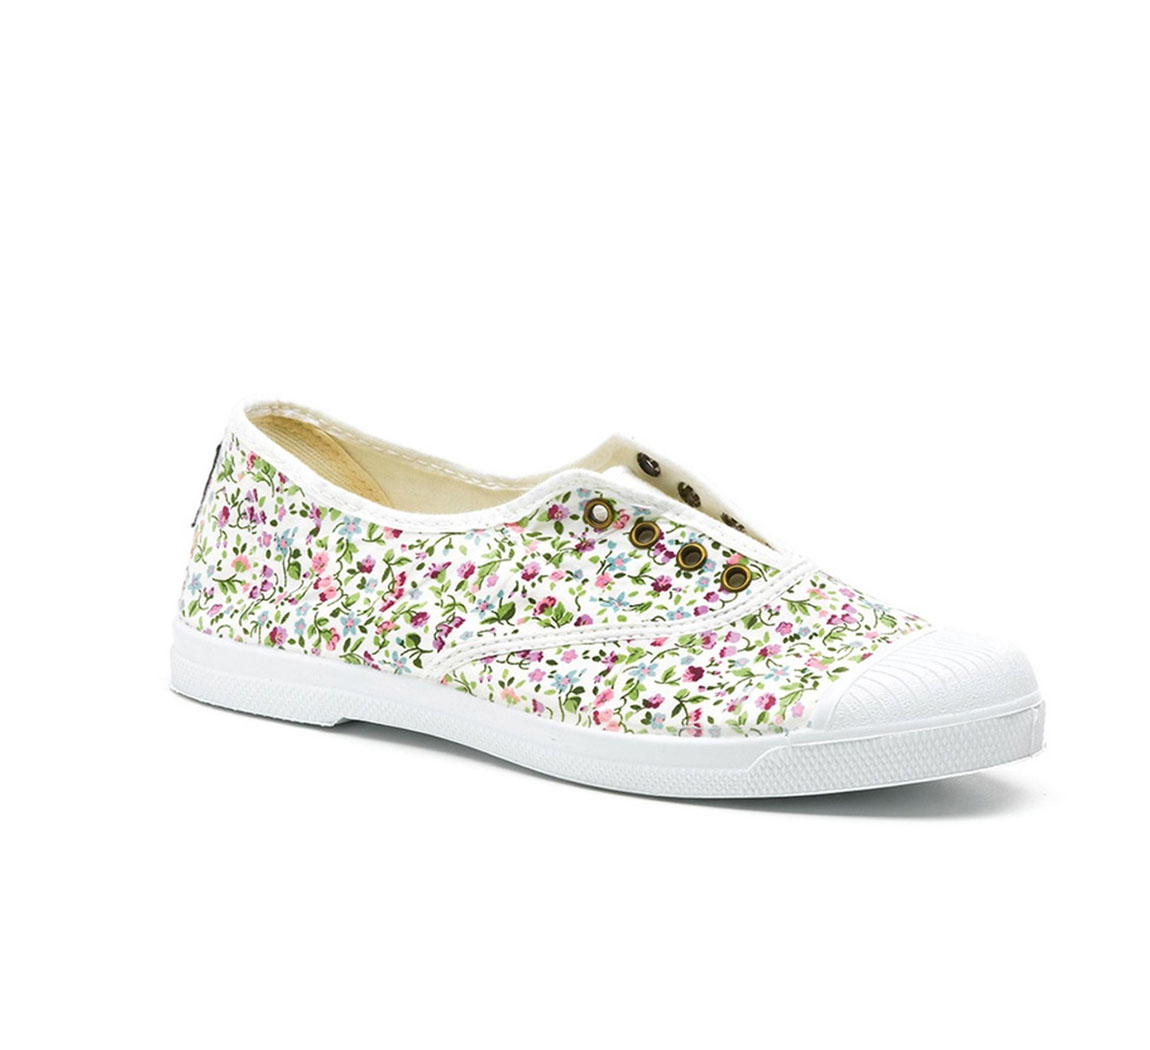 Chaussure femme Ingles Liberty Tintado